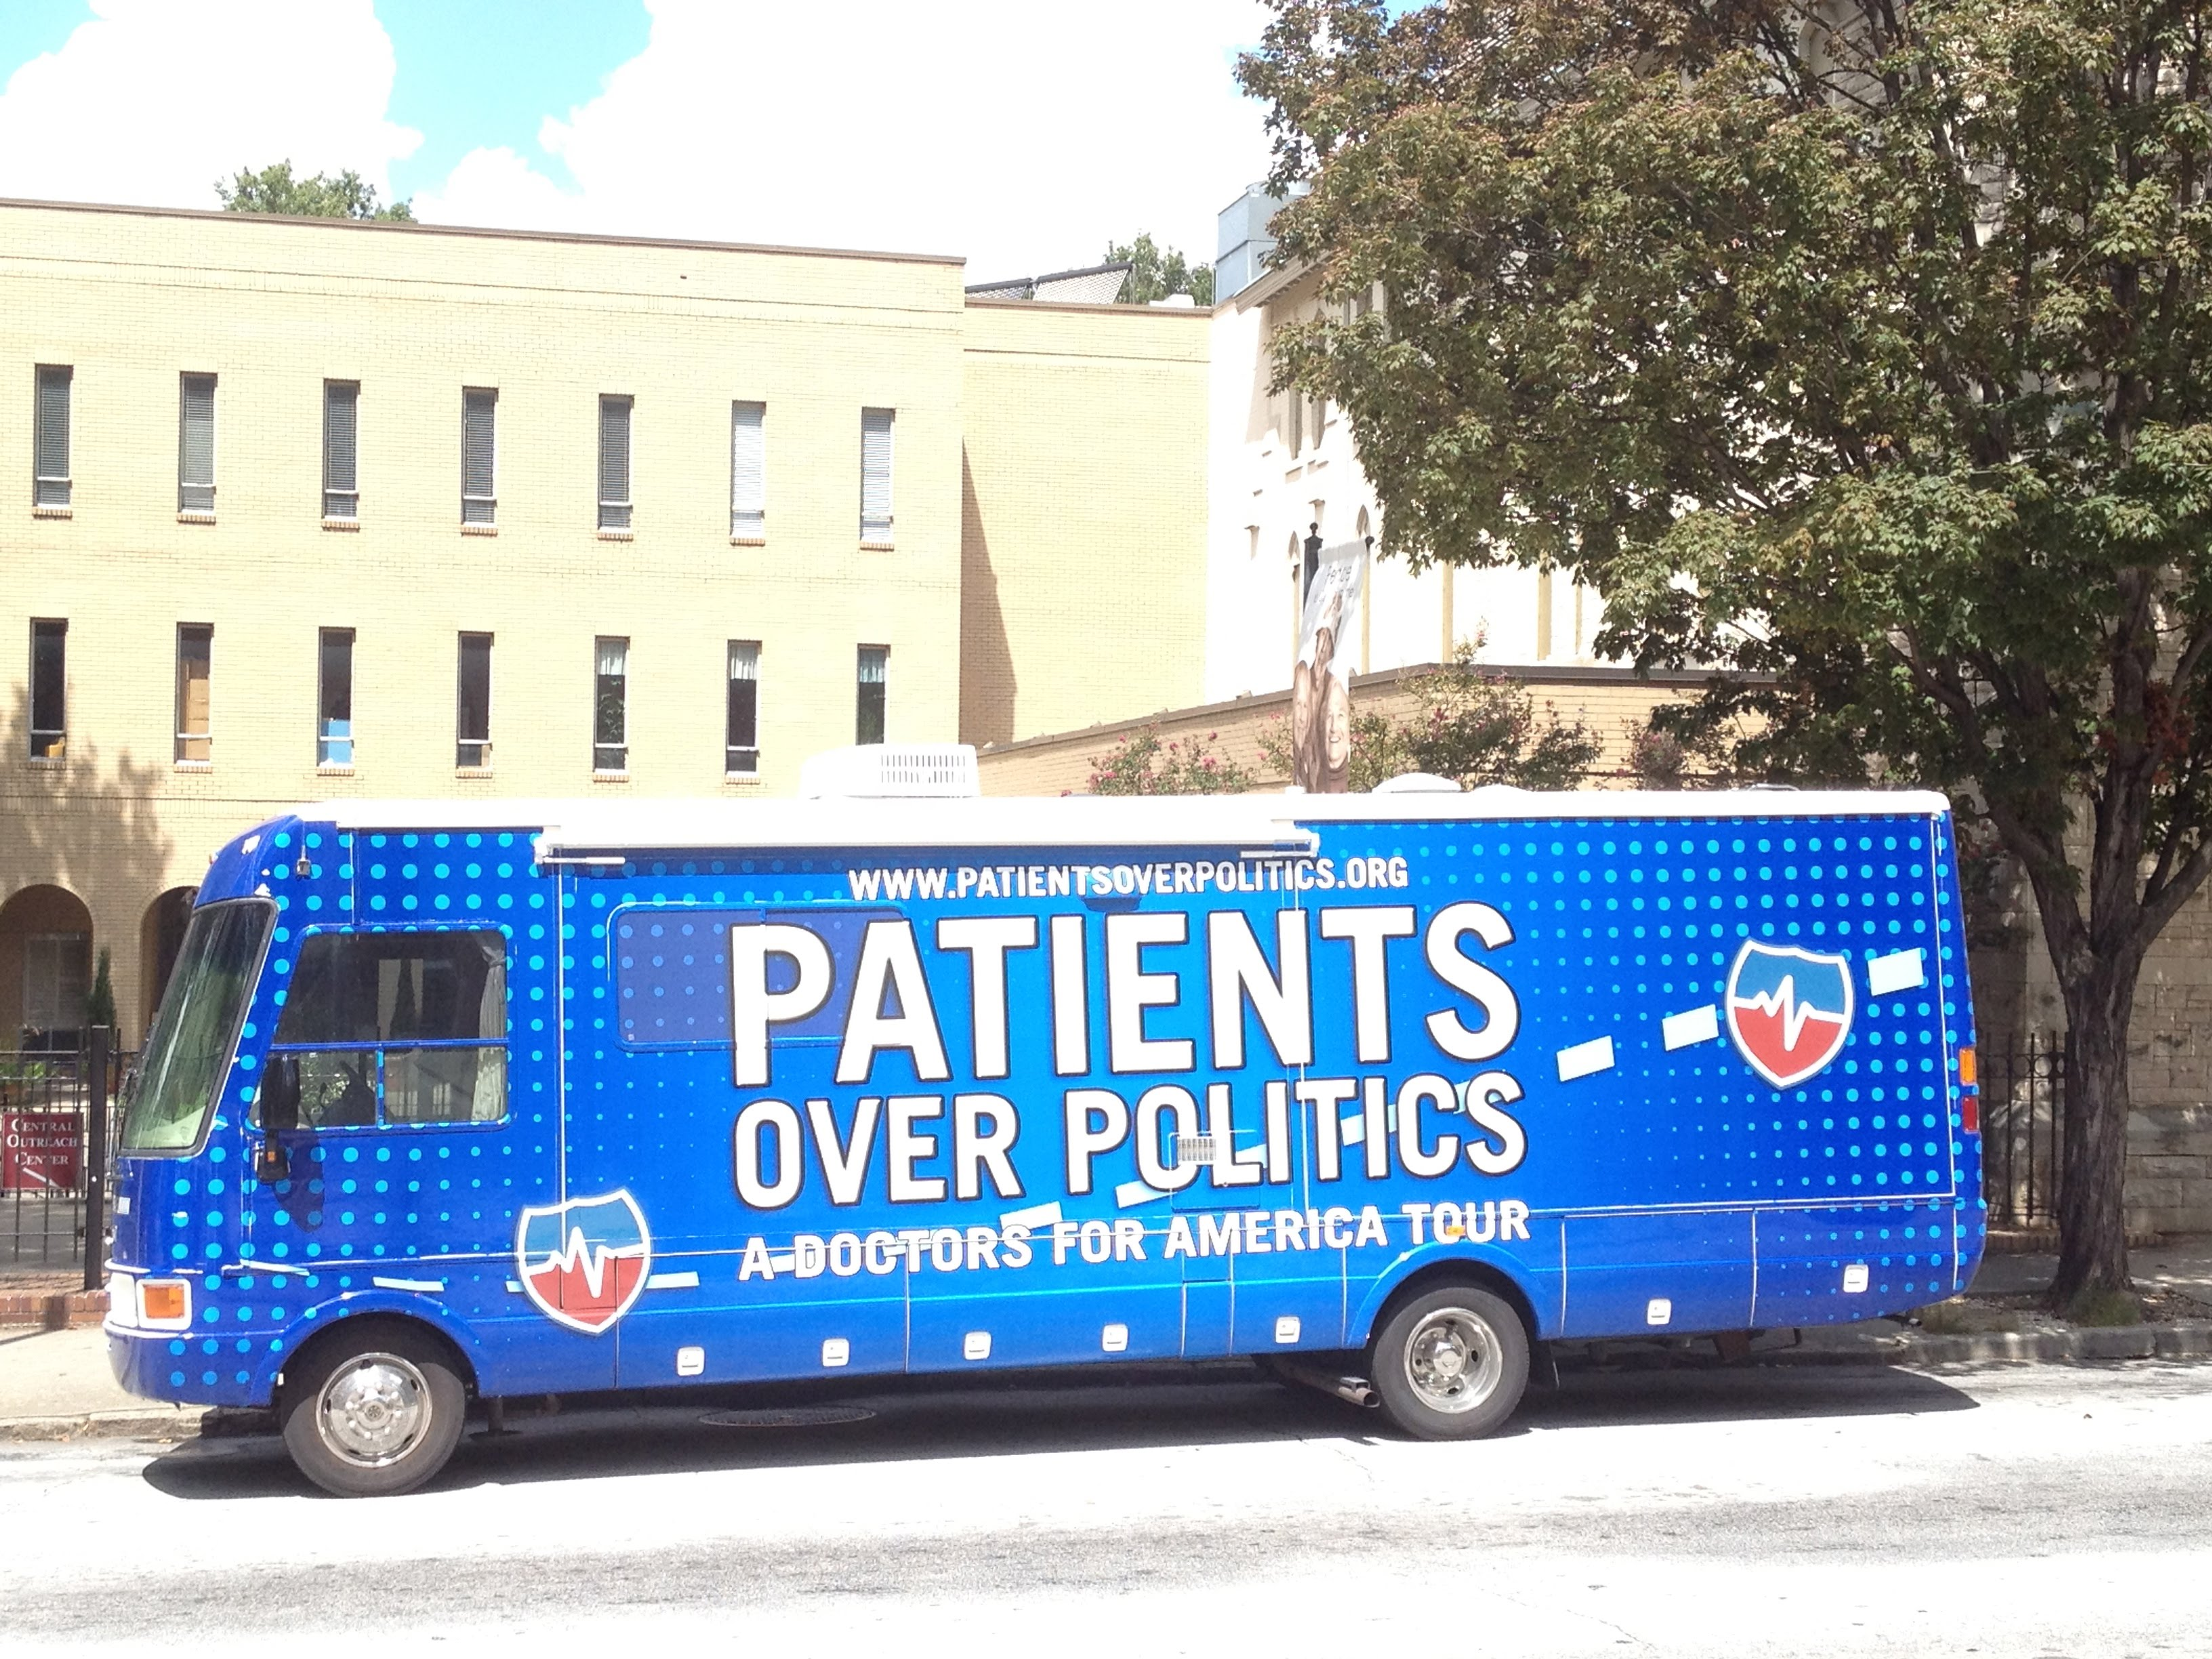 Doctors for America, Patients over Politics Bus Tour 2012